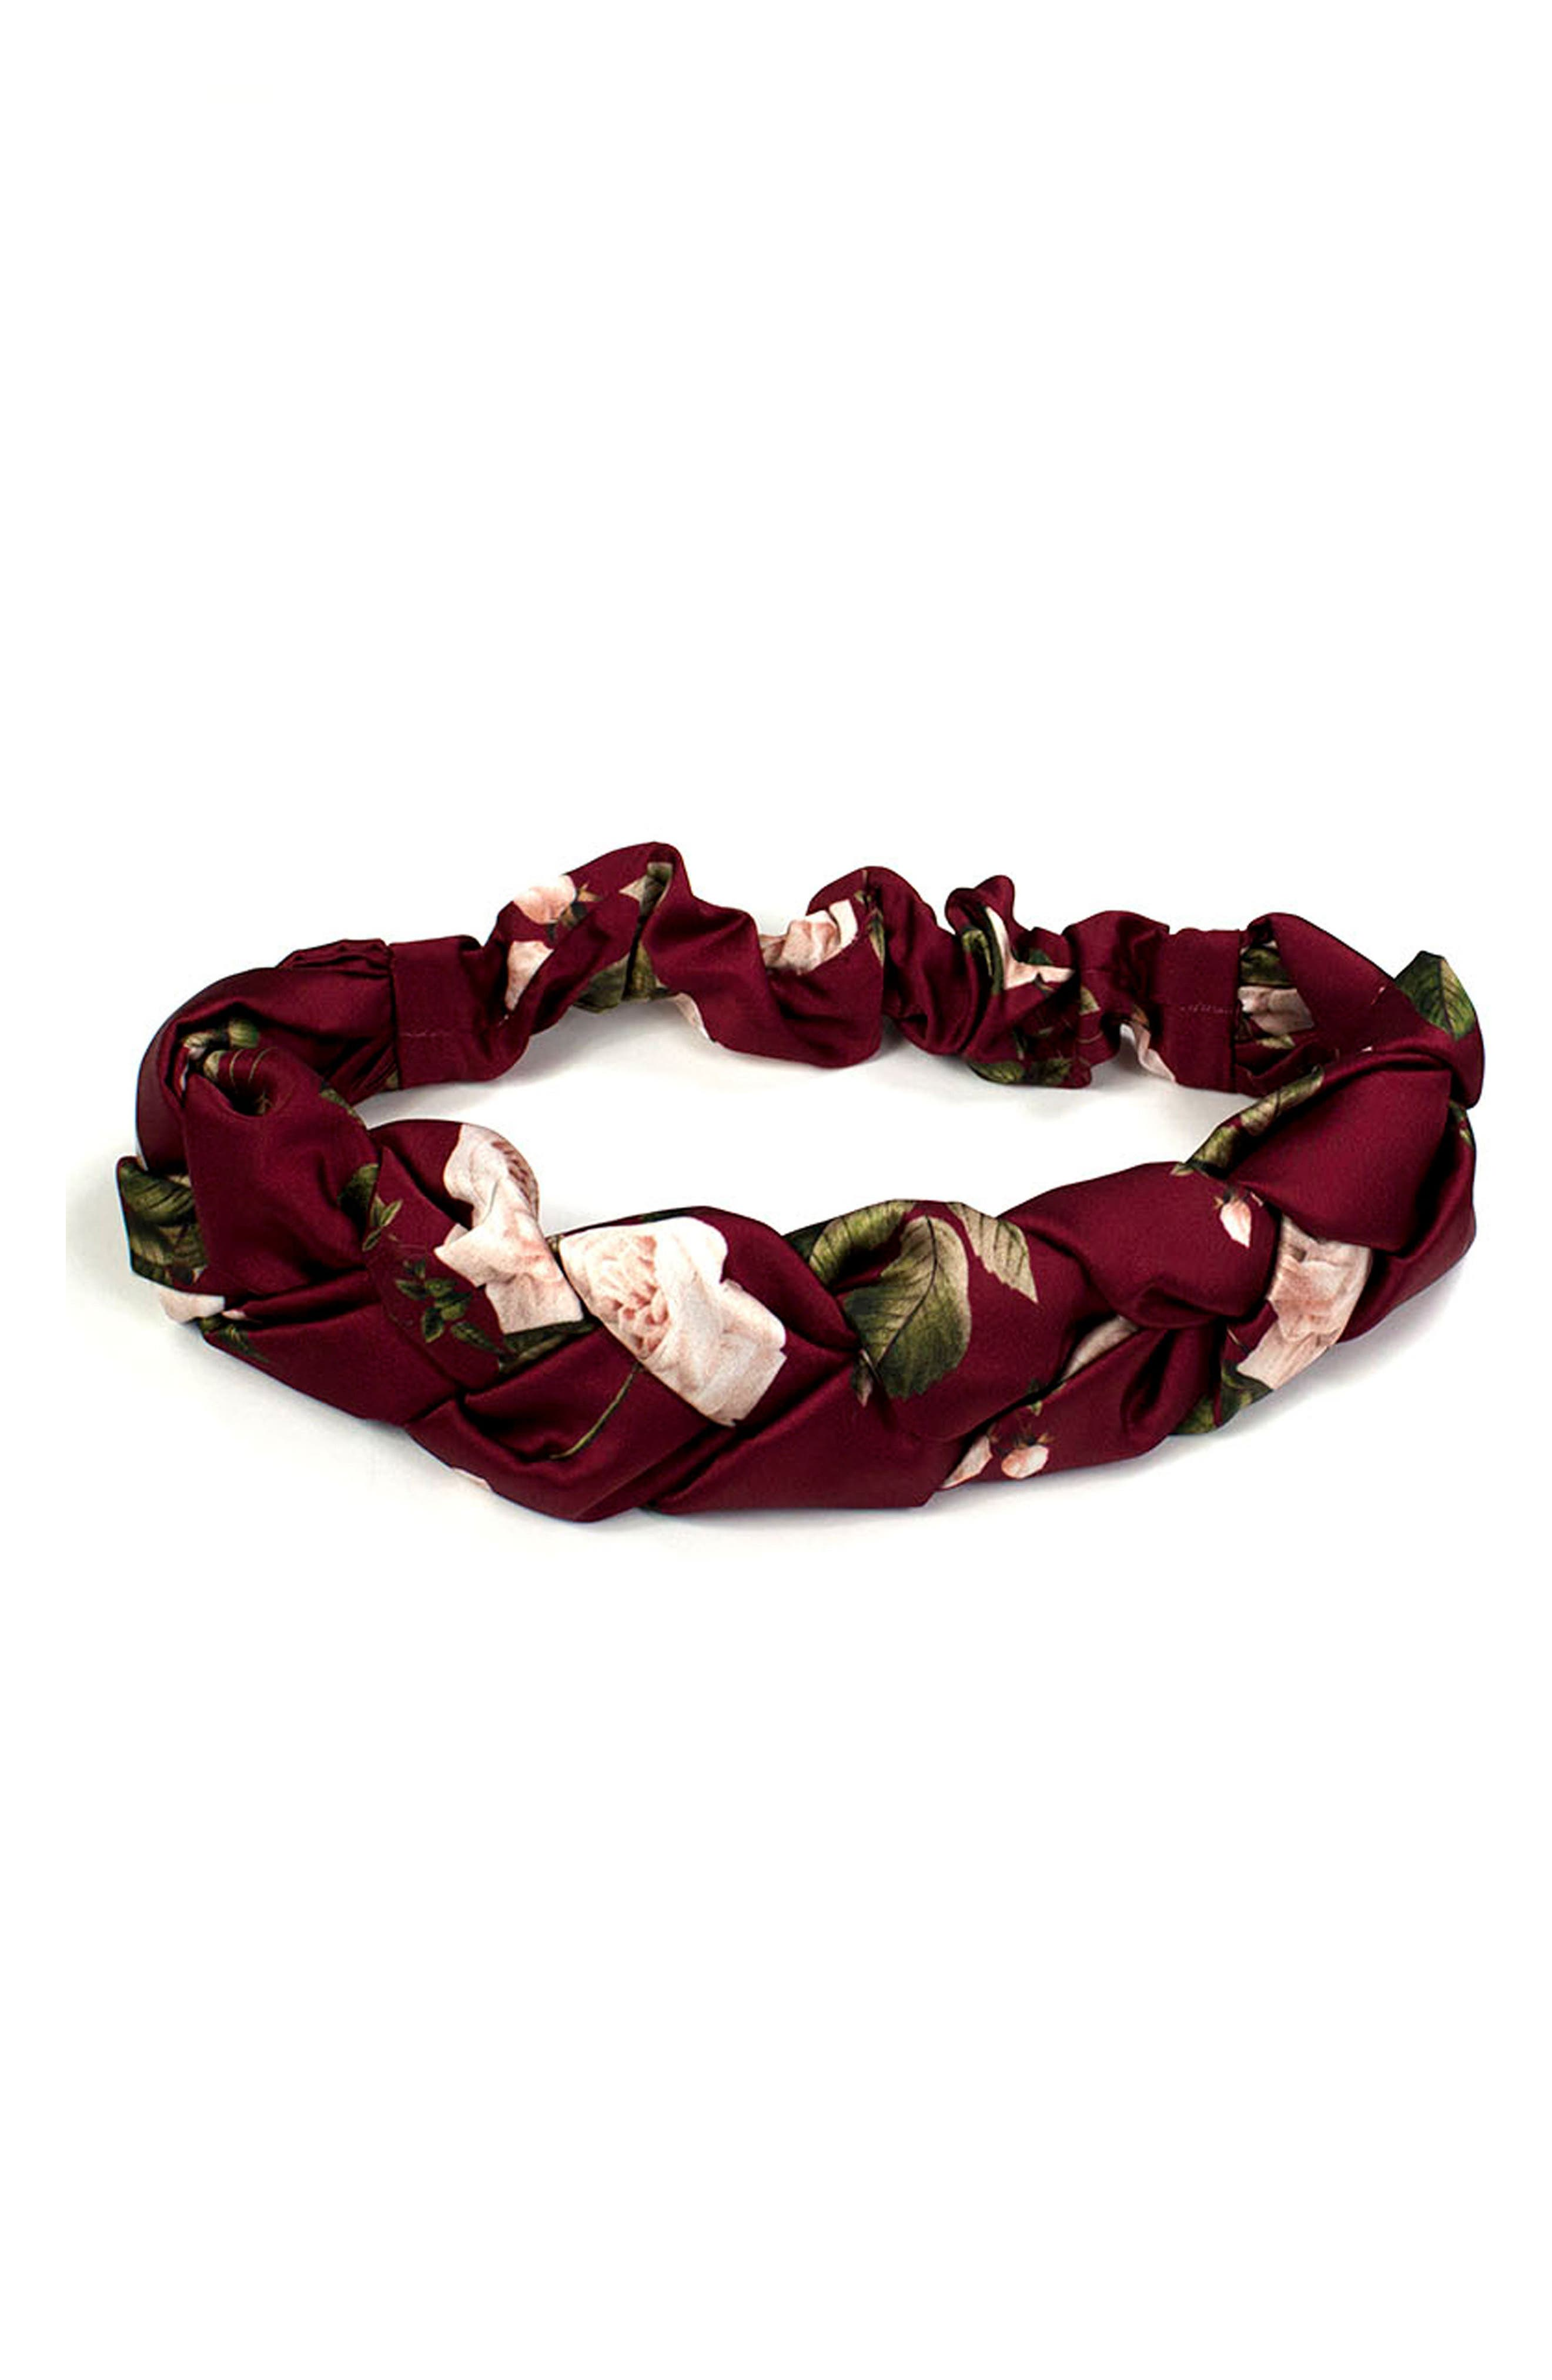 Winter Rose Braided Head Wrap,                             Main thumbnail 1, color,                             Winter Rose